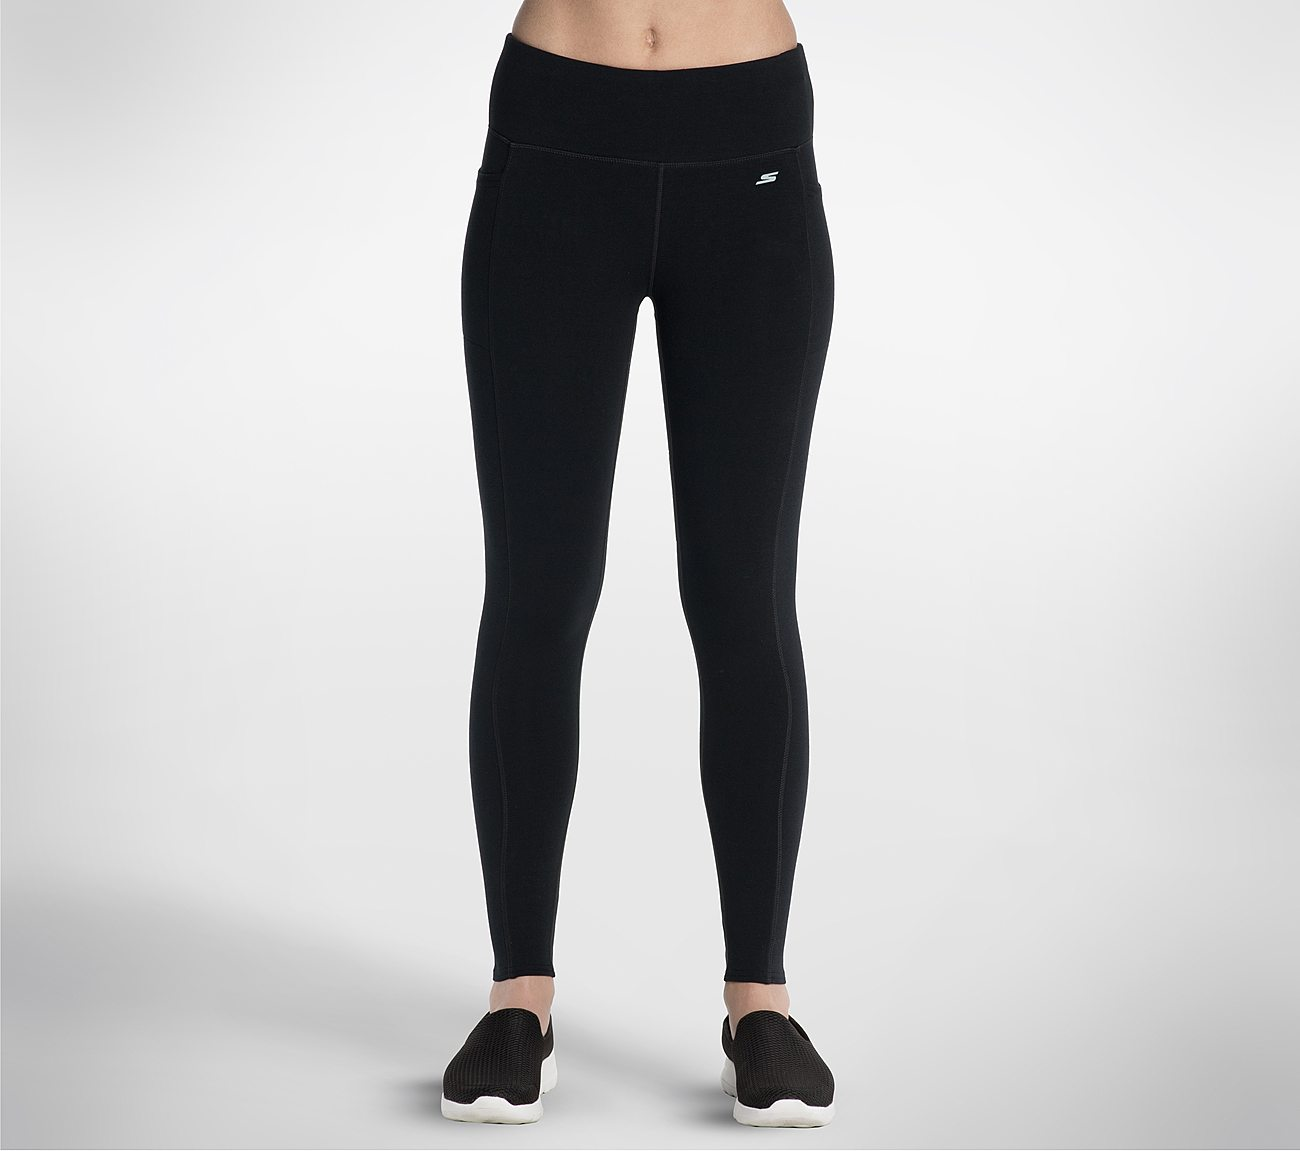 GO FLEX High Waisted Legging